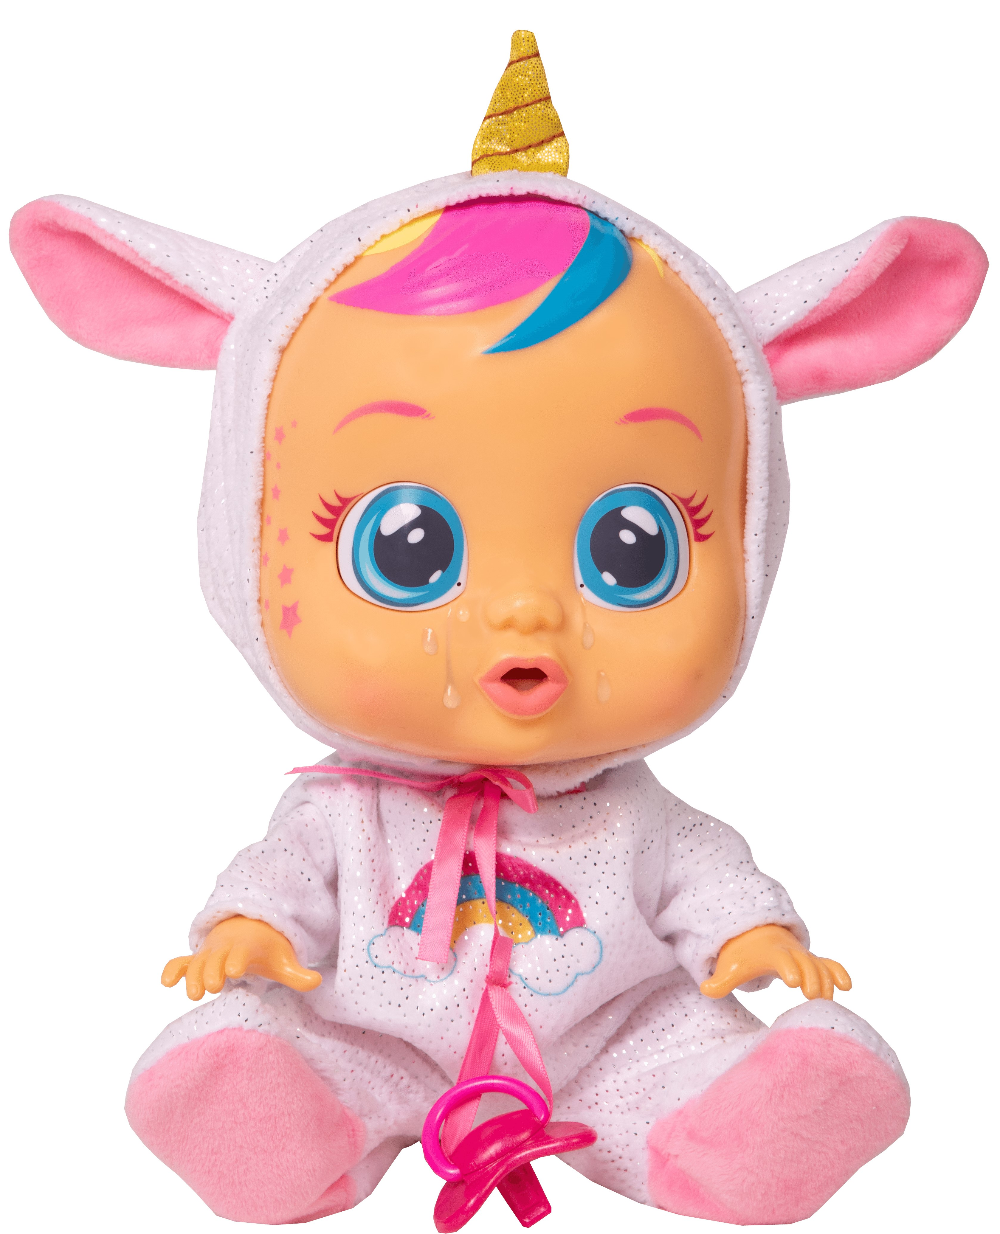 Cry Babies Dreamy Baby Doll (Walmart Exclusive) Walmart